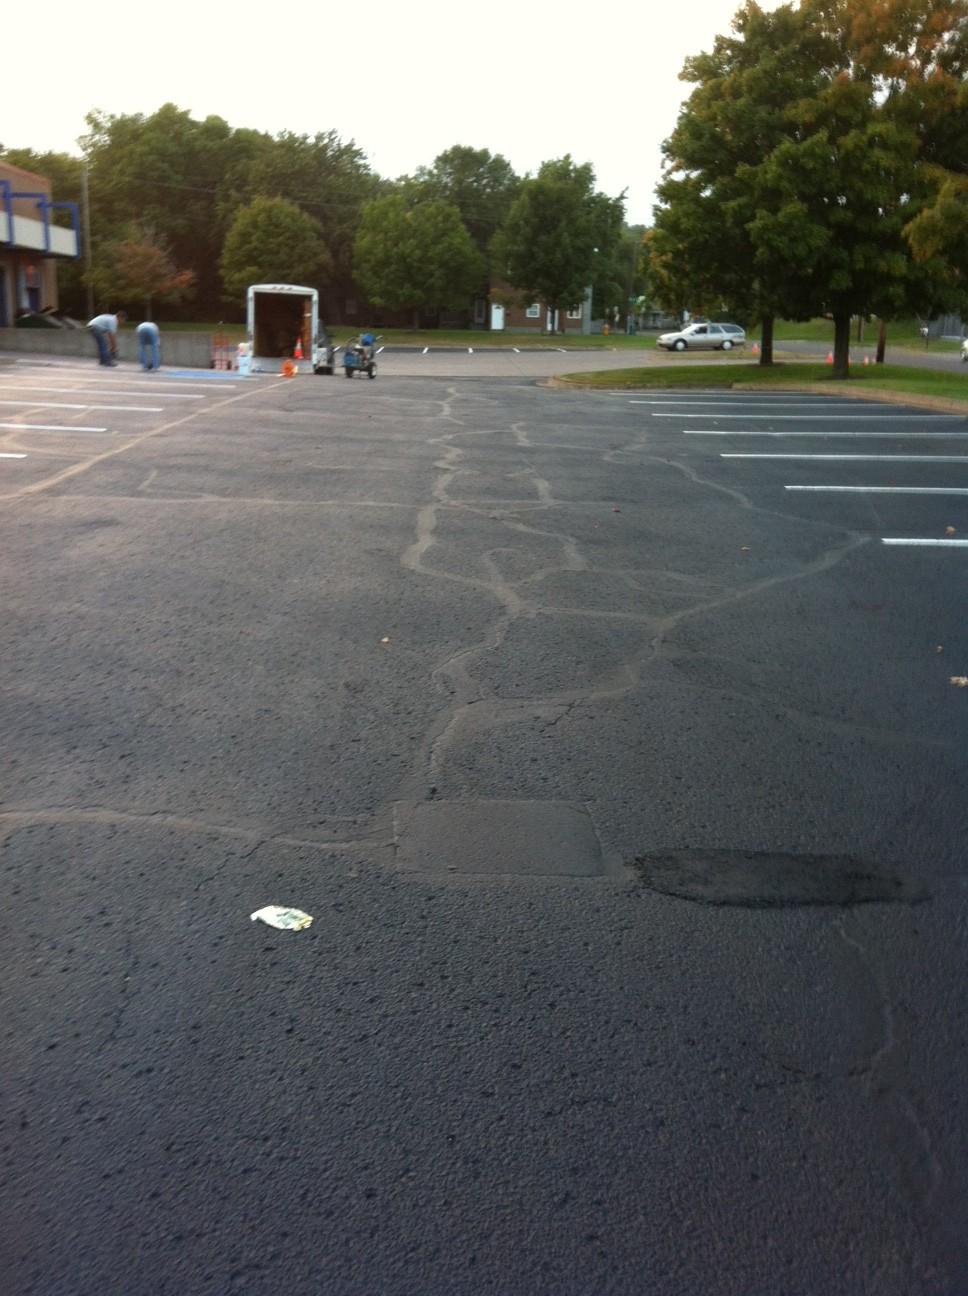 Asphalt patching, sealcoating and parking lot striping project in Duluth